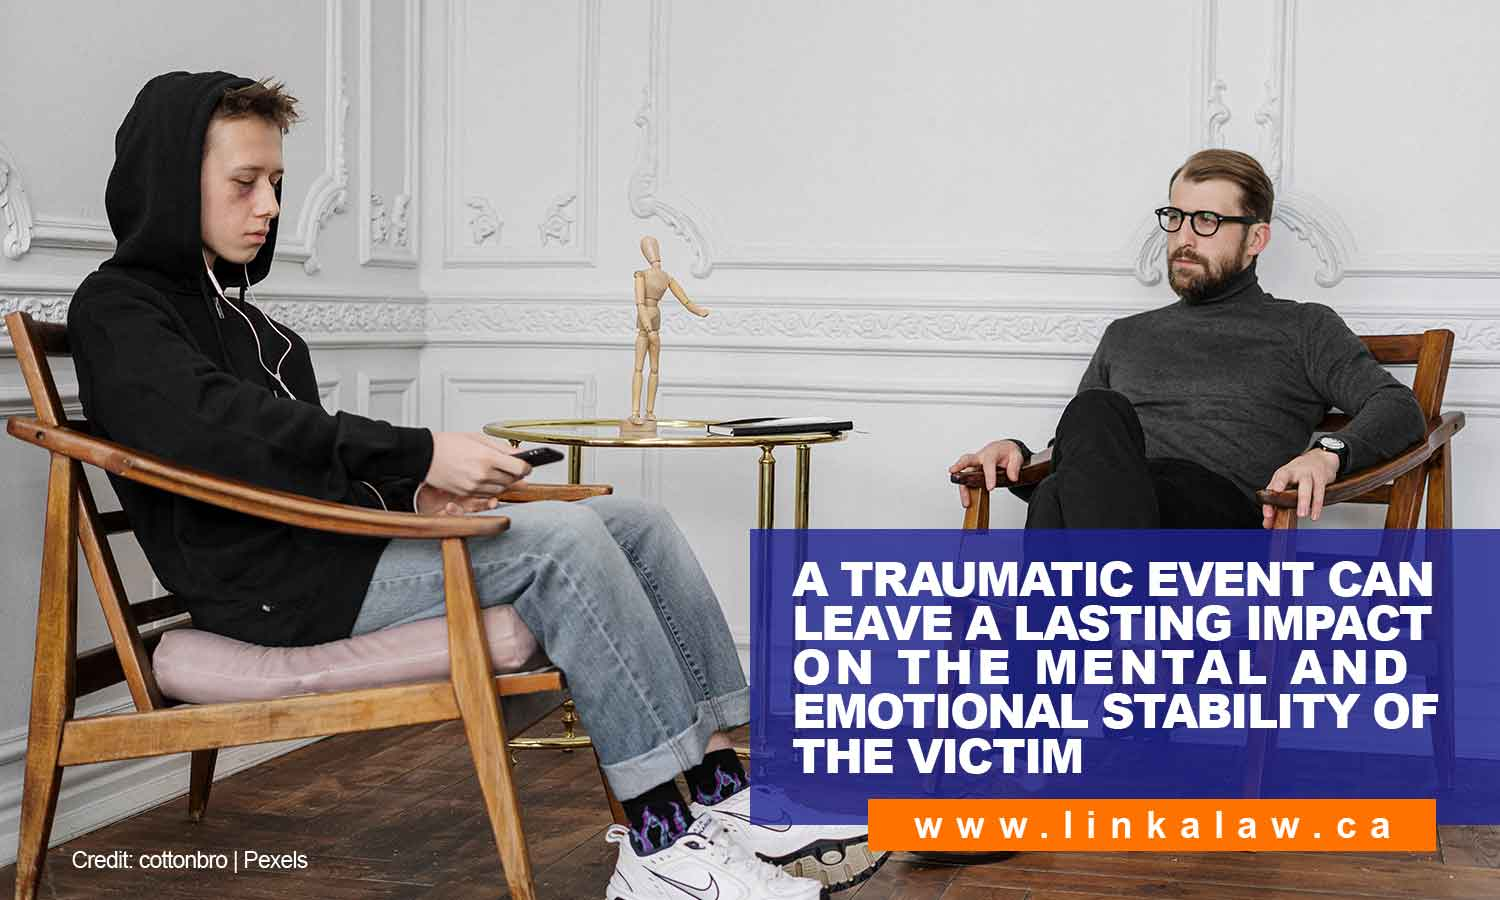 A traumatic event can leave a lasting impact on the mental and emotional